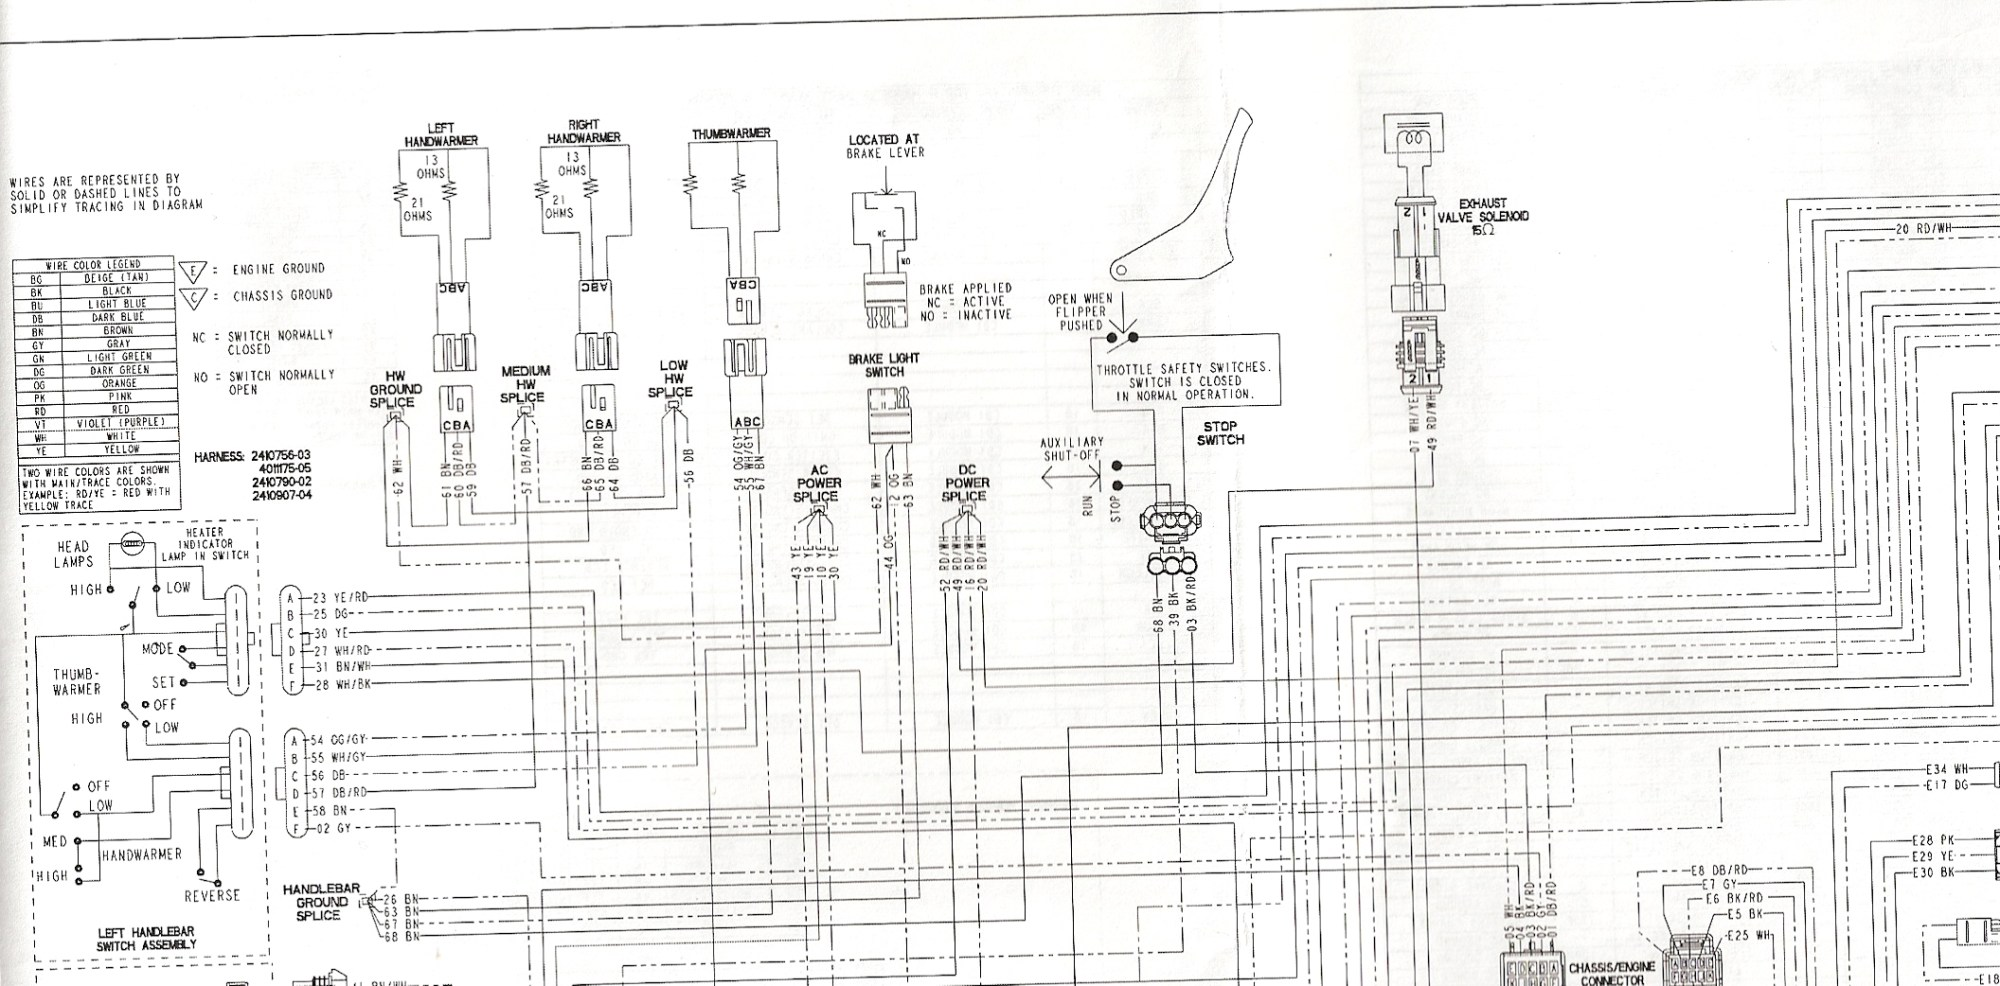 hight resolution of polaris 07 iq 600 wiring schematic 07 polaris iq 700 polaris snowmobile engine diagrams 2002 polaris